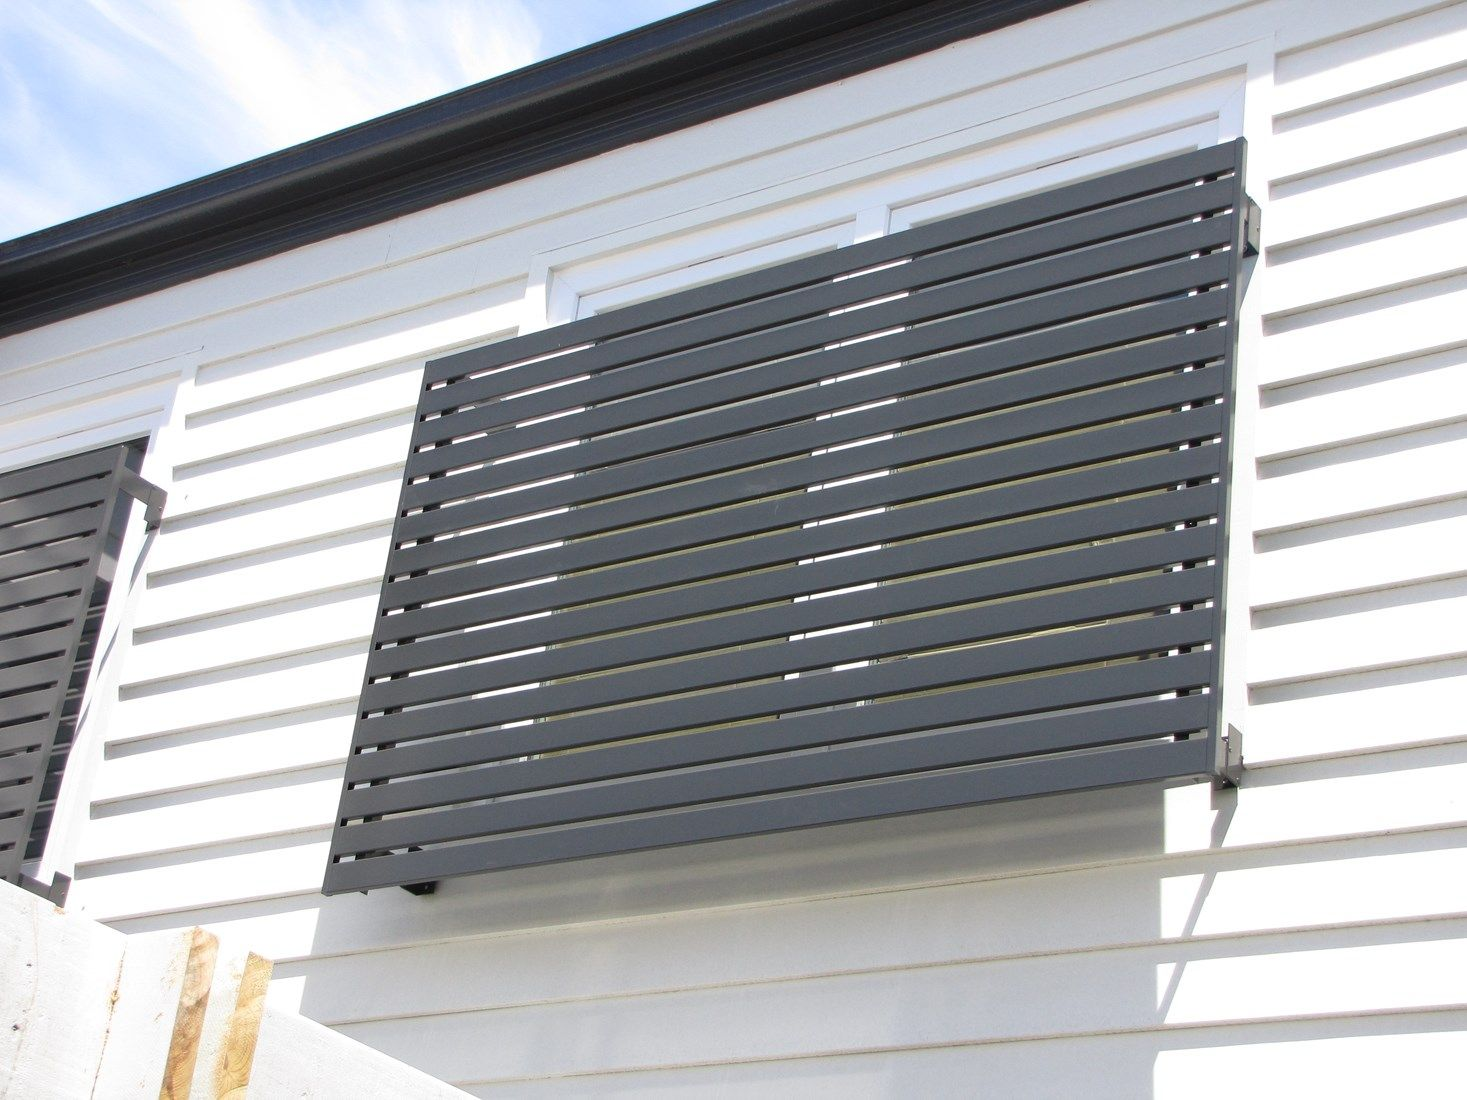 Bayside Privacy Screens Install Quality Aluminium Baton Style